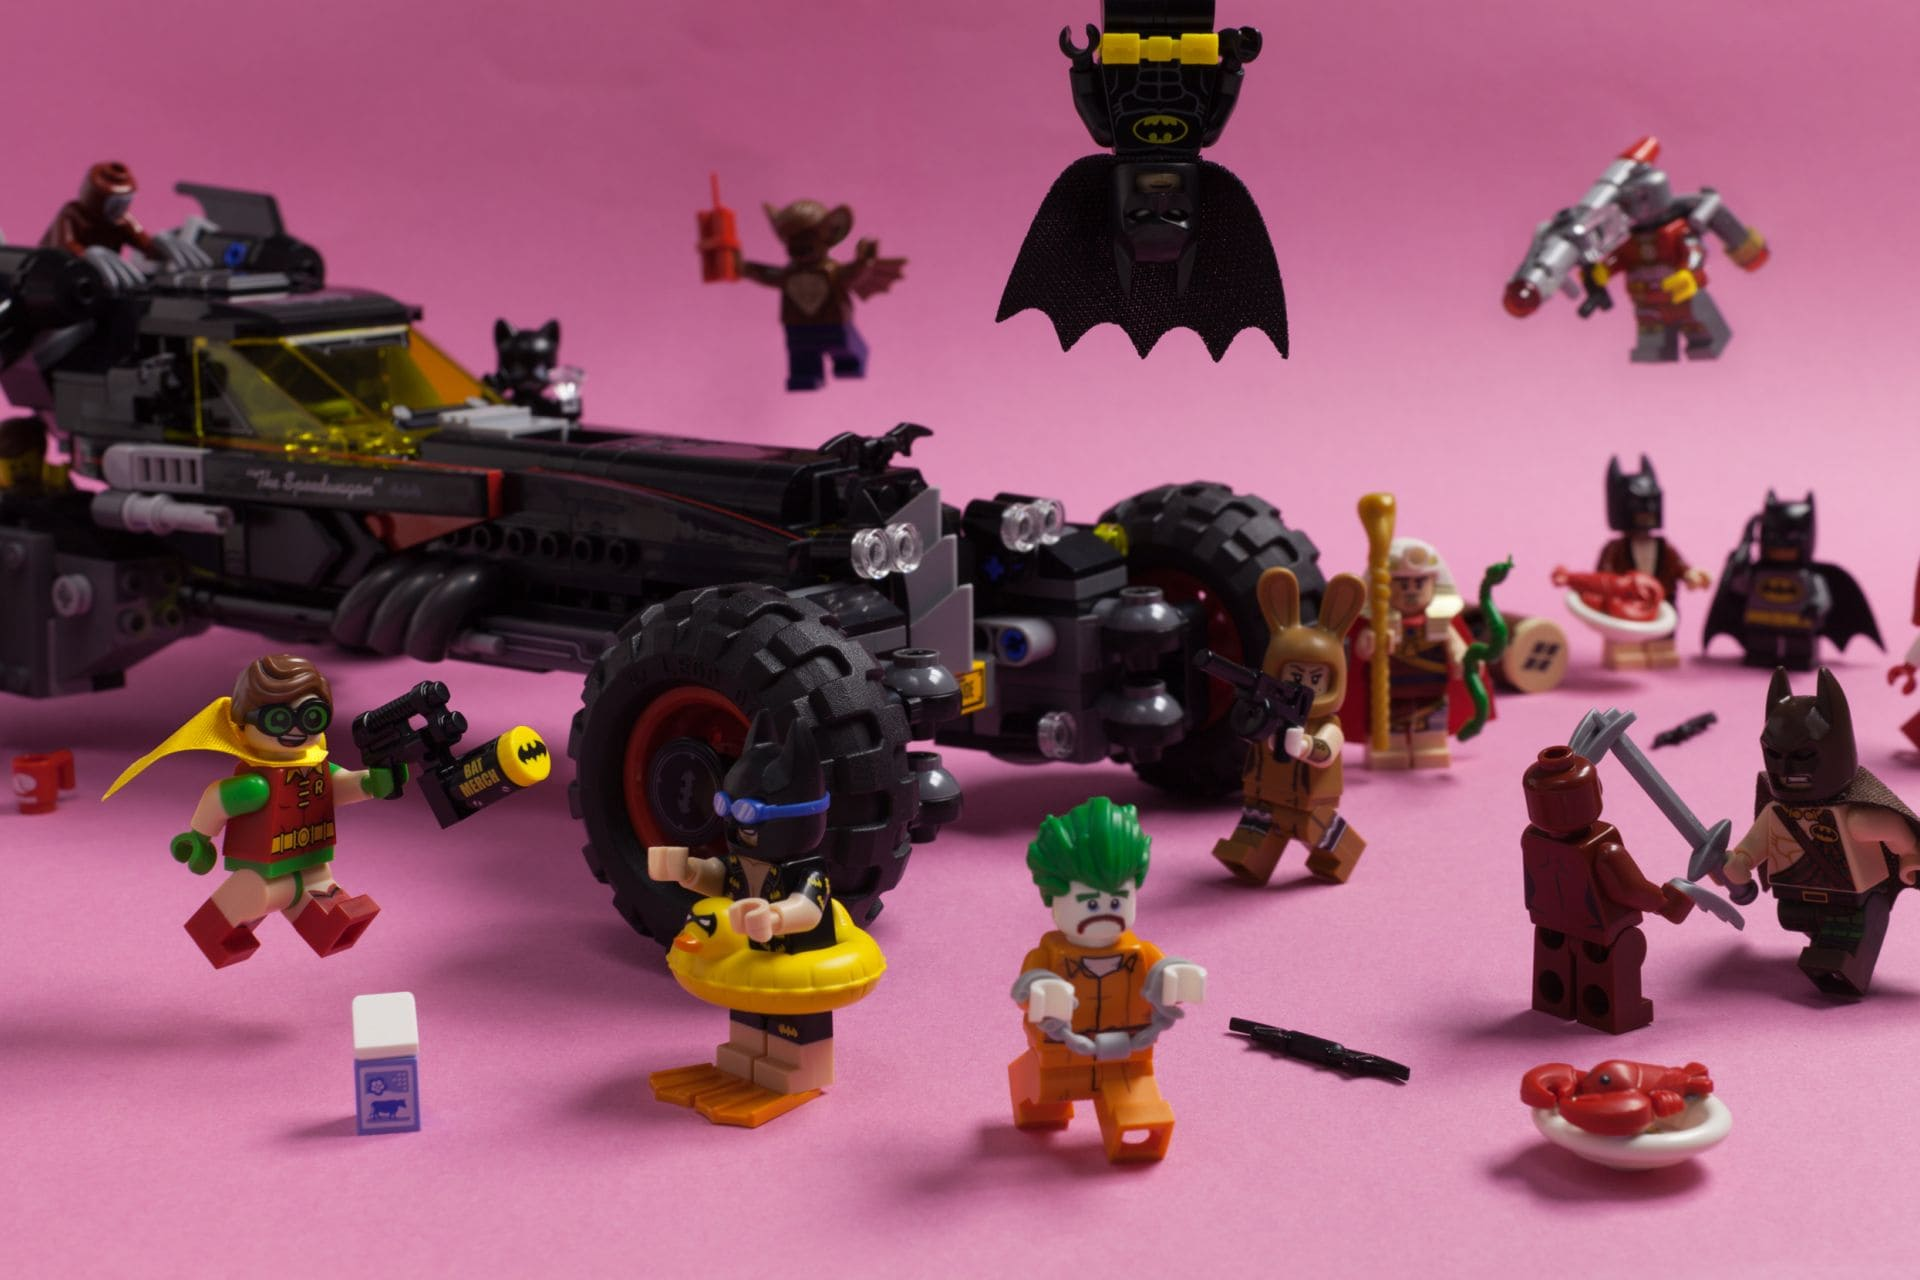 Lego characters and props